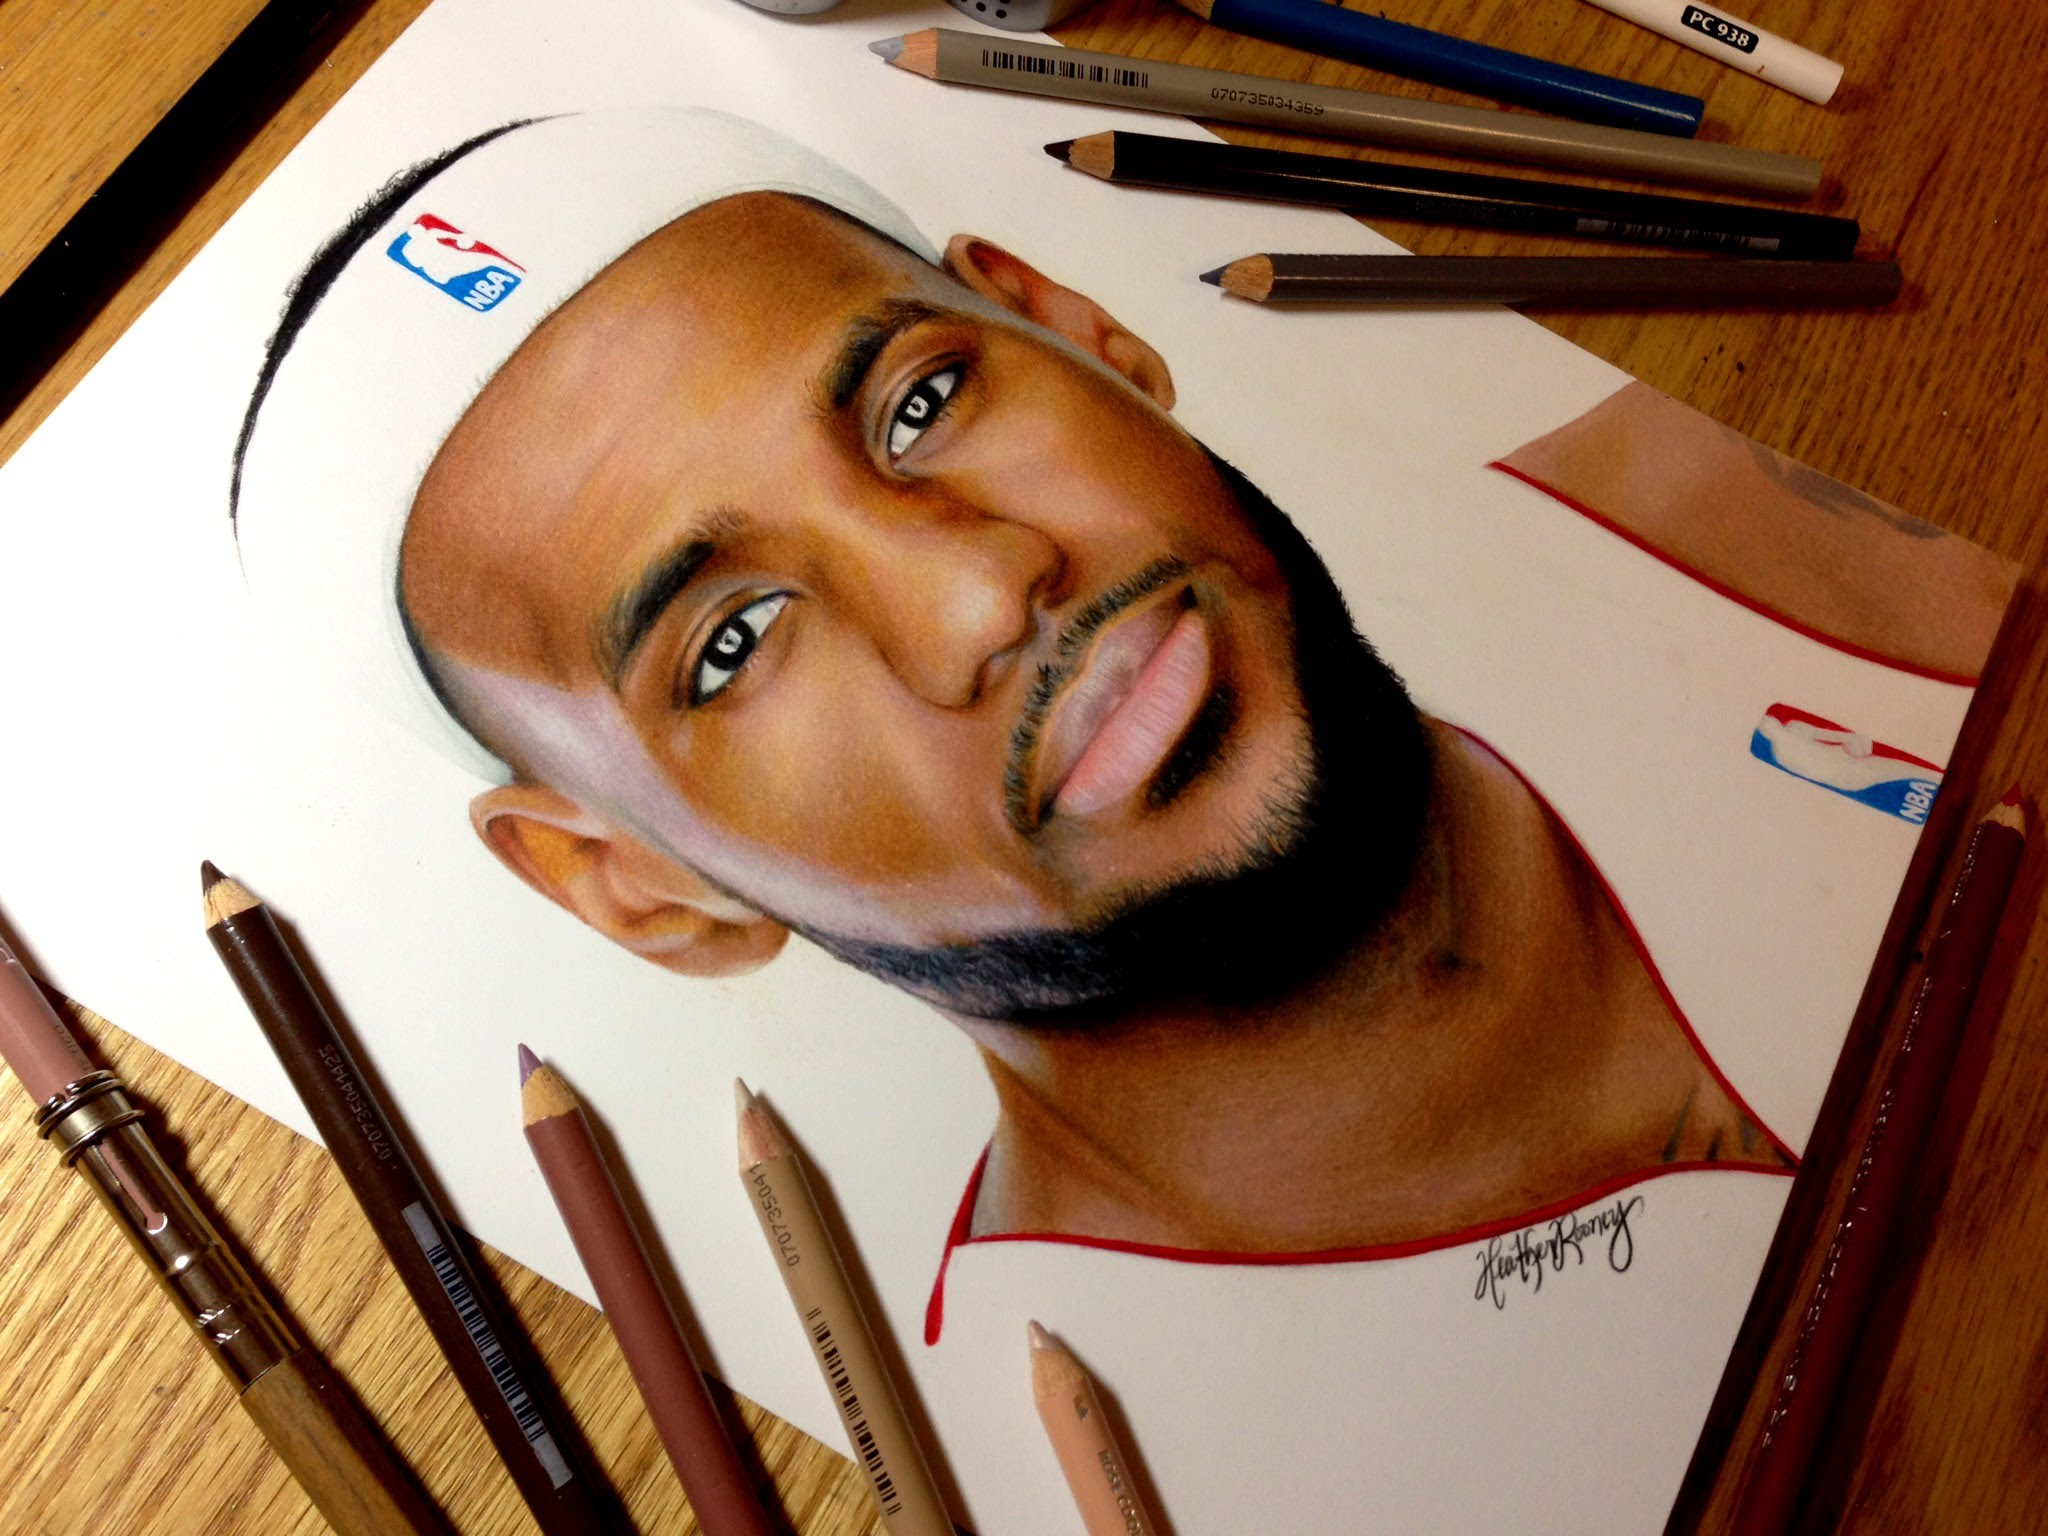 Drawn celebrity real life James LeBron YouTube Drawing